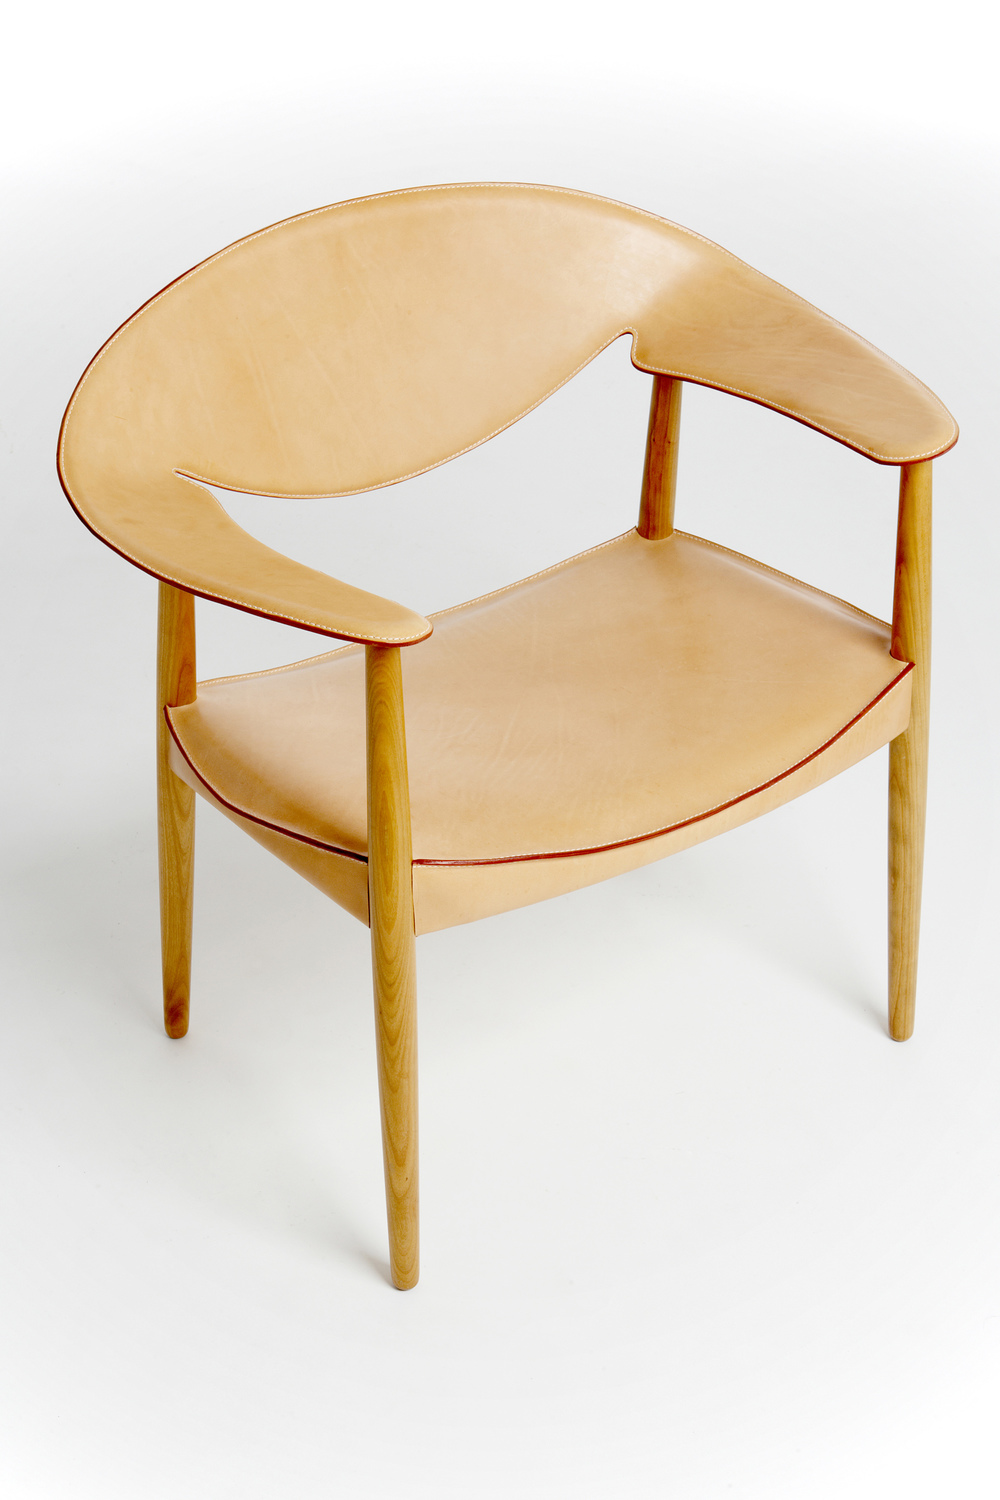 Larsen and Madsen 1959 Metropolitan Chair in Cherry